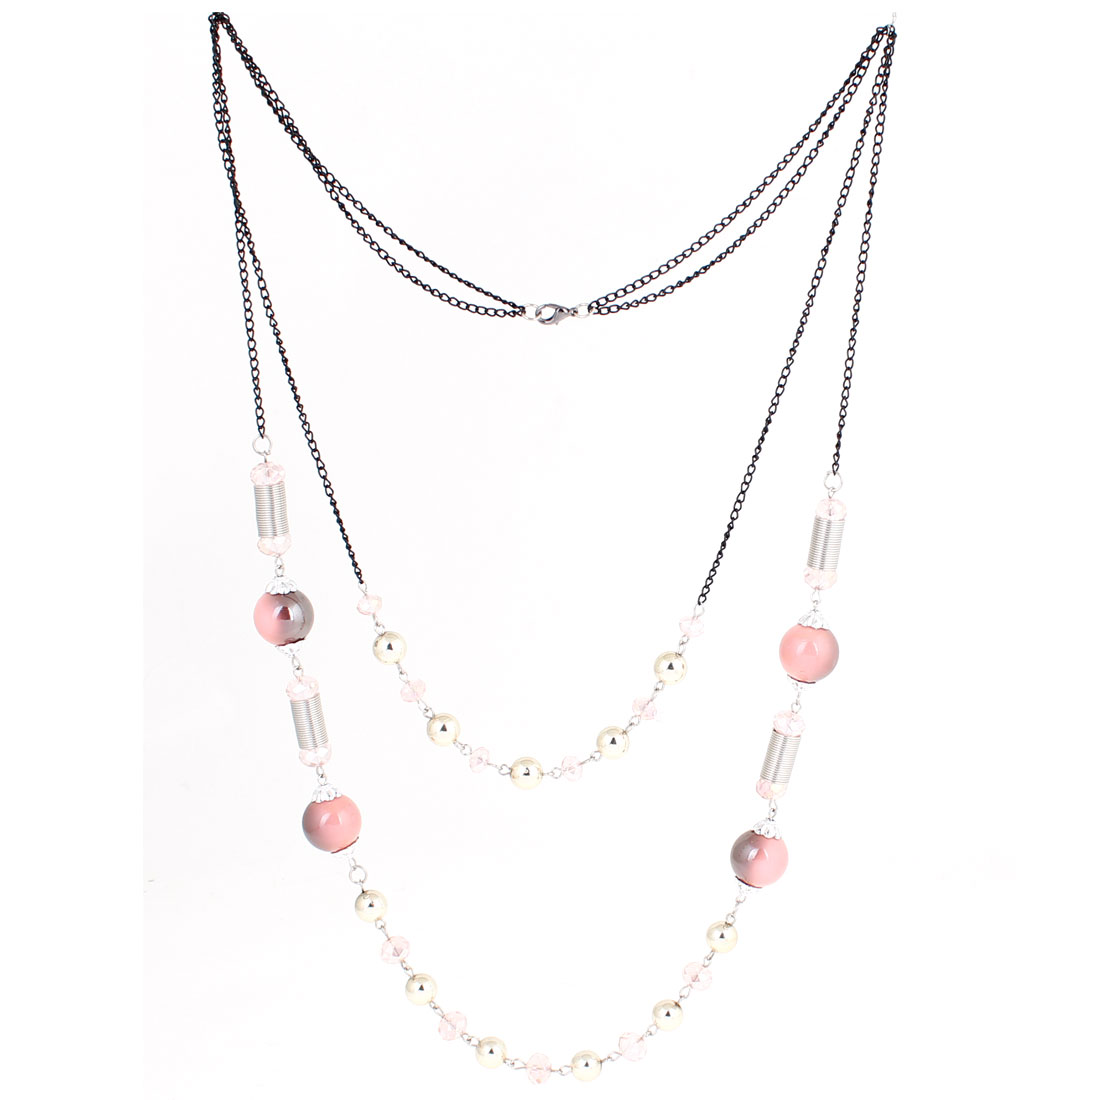 Bead Cylinder Decor 2 Layers Sweater Chain Necklace Pale Pink Black for Women